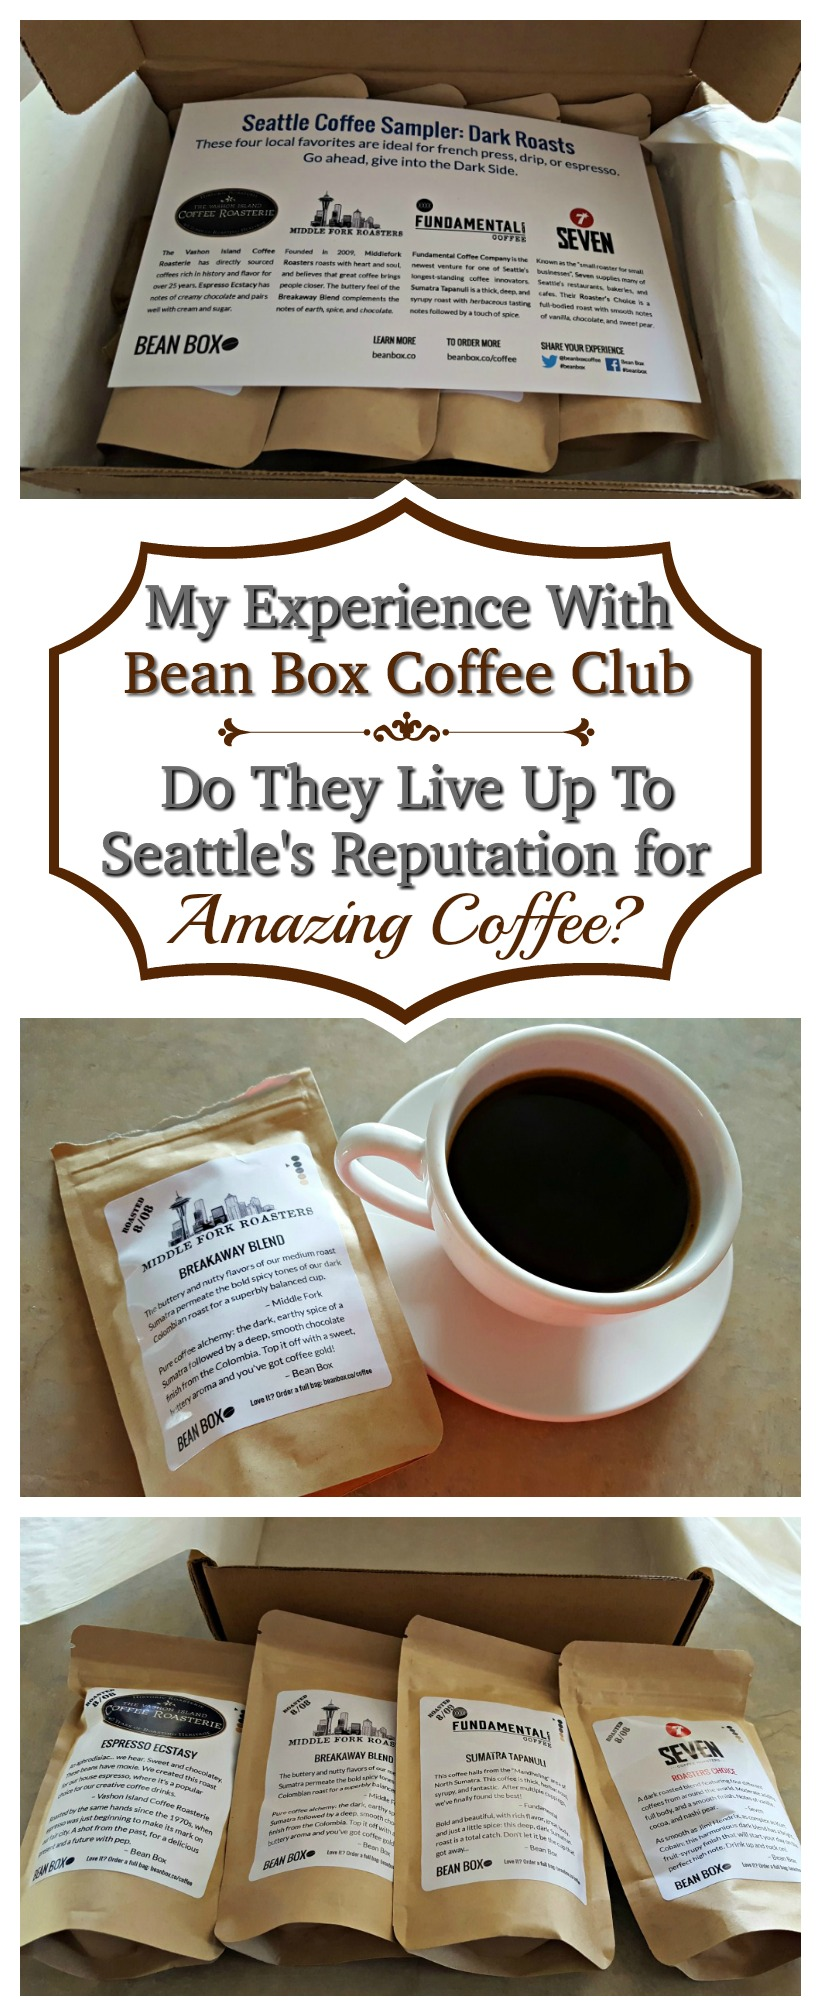 We Tried Bean Box Coffee Club - but do they live up to Seattle's reputation for amazing coffee?